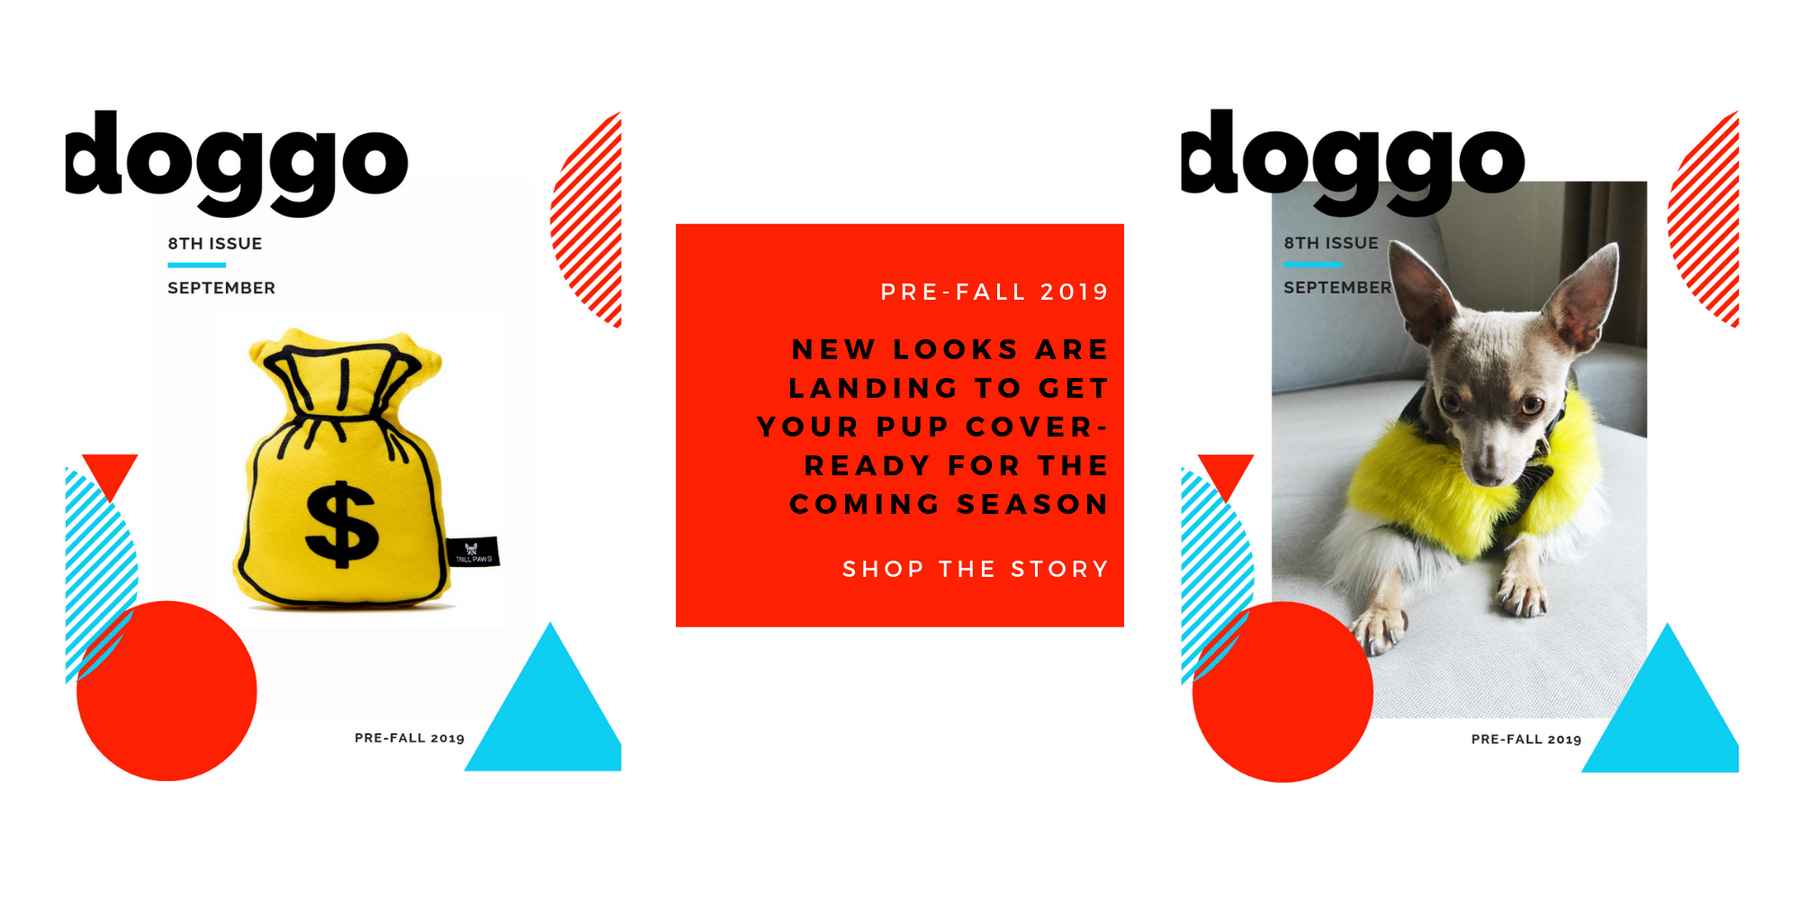 shopdogandco com – DOG & CO